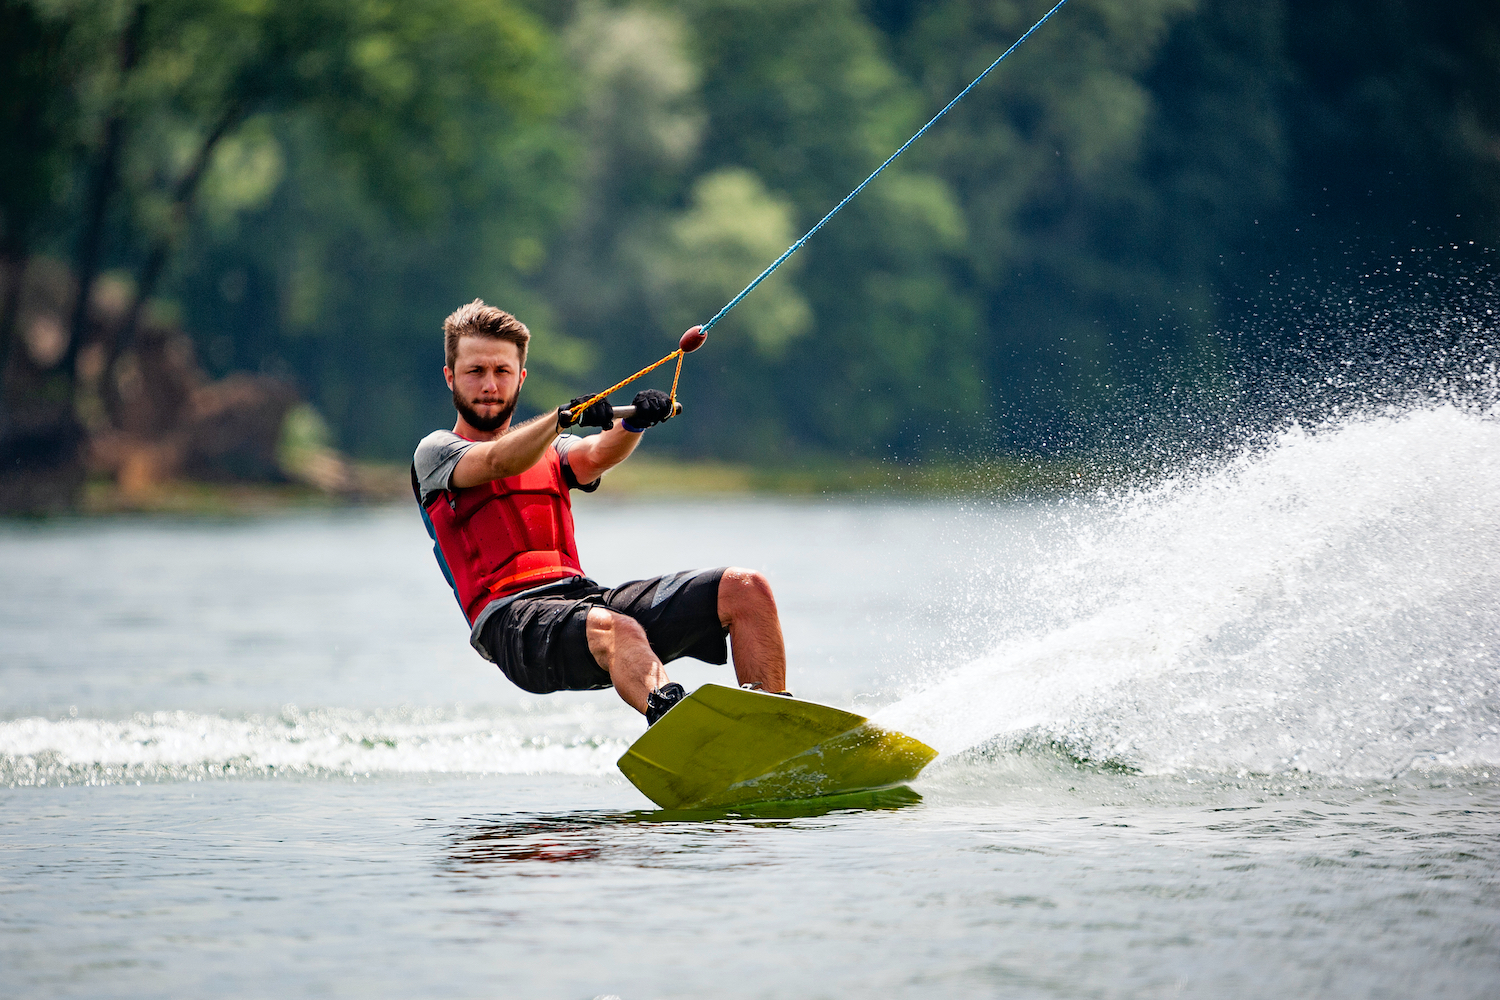 Wakeboarder on lake